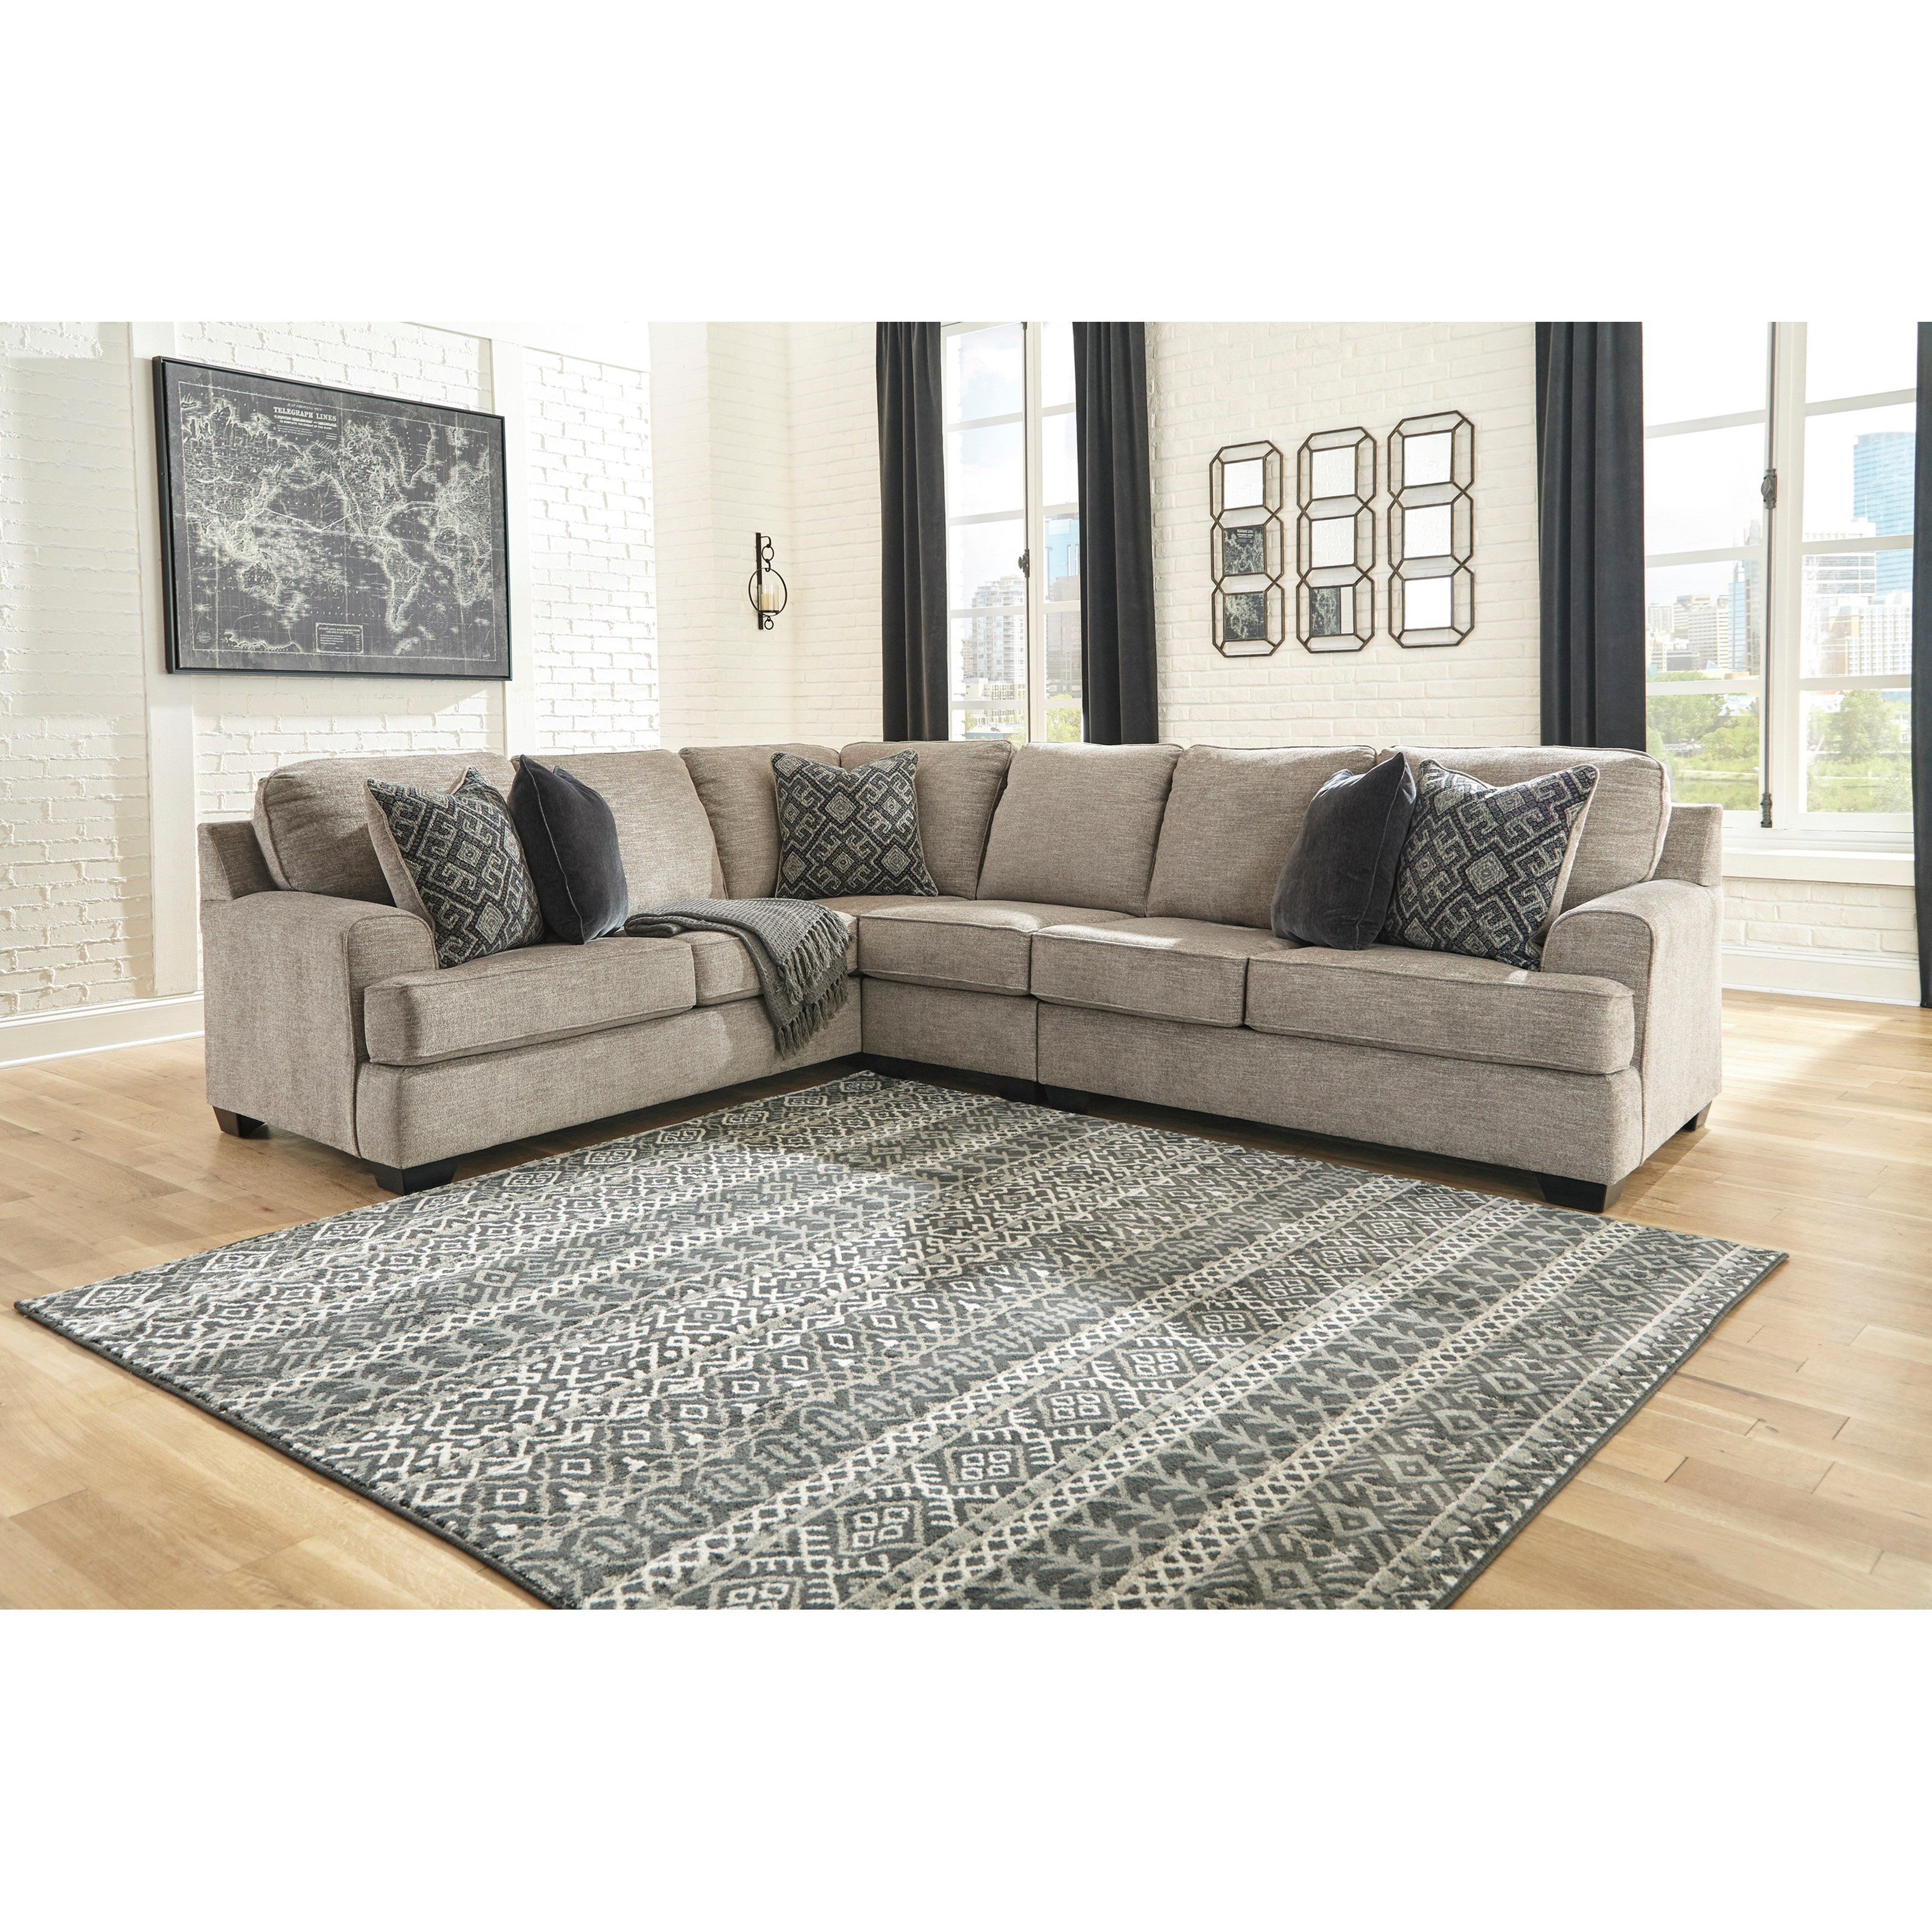 Bovarian 3-Piece Sectional by Signature Design by Ashley at Westrich Furniture & Appliances